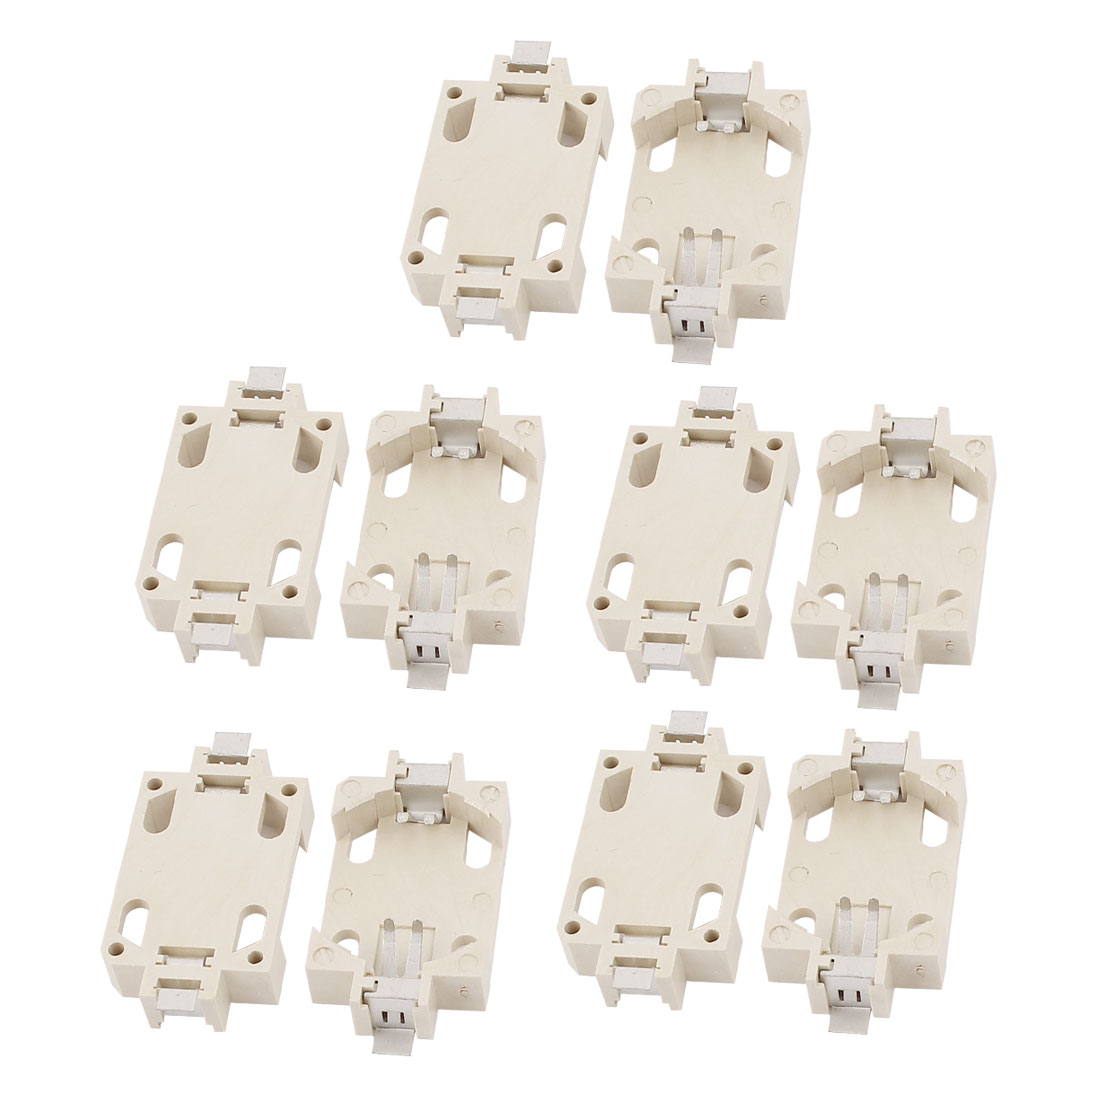 10pcs CR2032 SMD Lithium Coin Cell Button Battery Holder Socket Case White